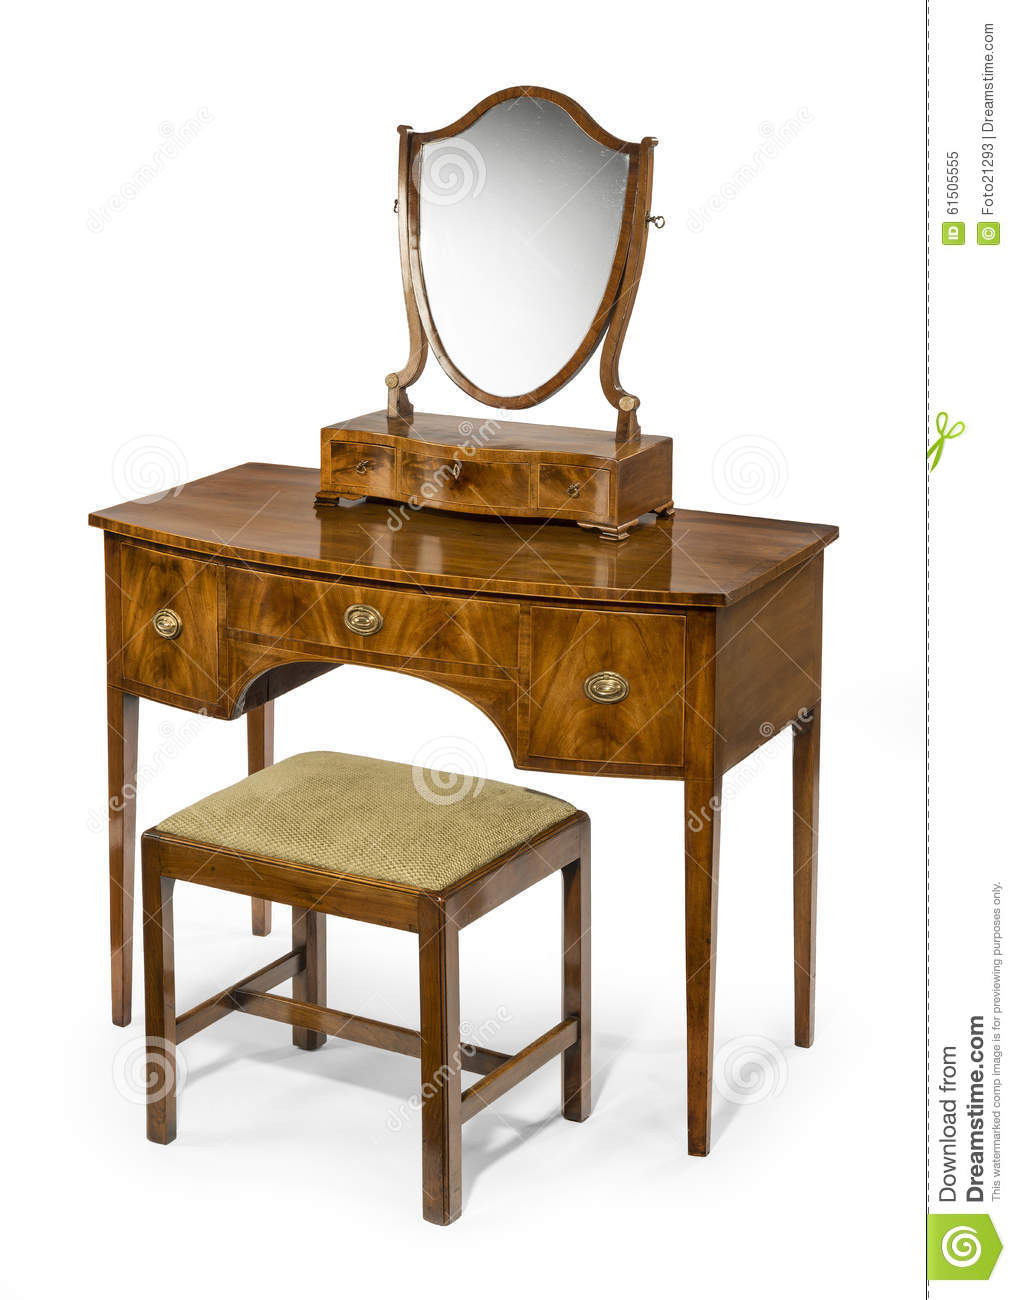 Mirrored Vanity Table And Stool: Dressing Table Mirror And Stool Set Antique And Vintage